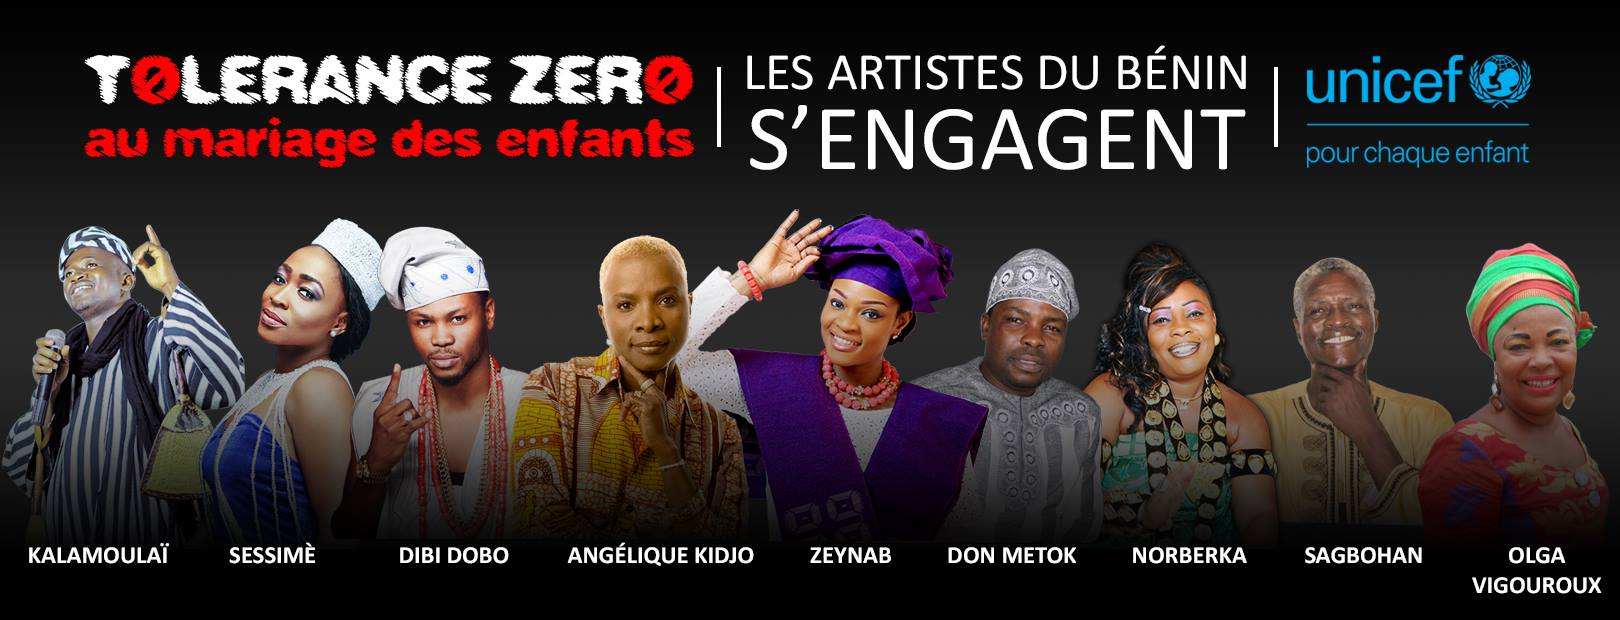 Artists from Benin are engaged in the cause